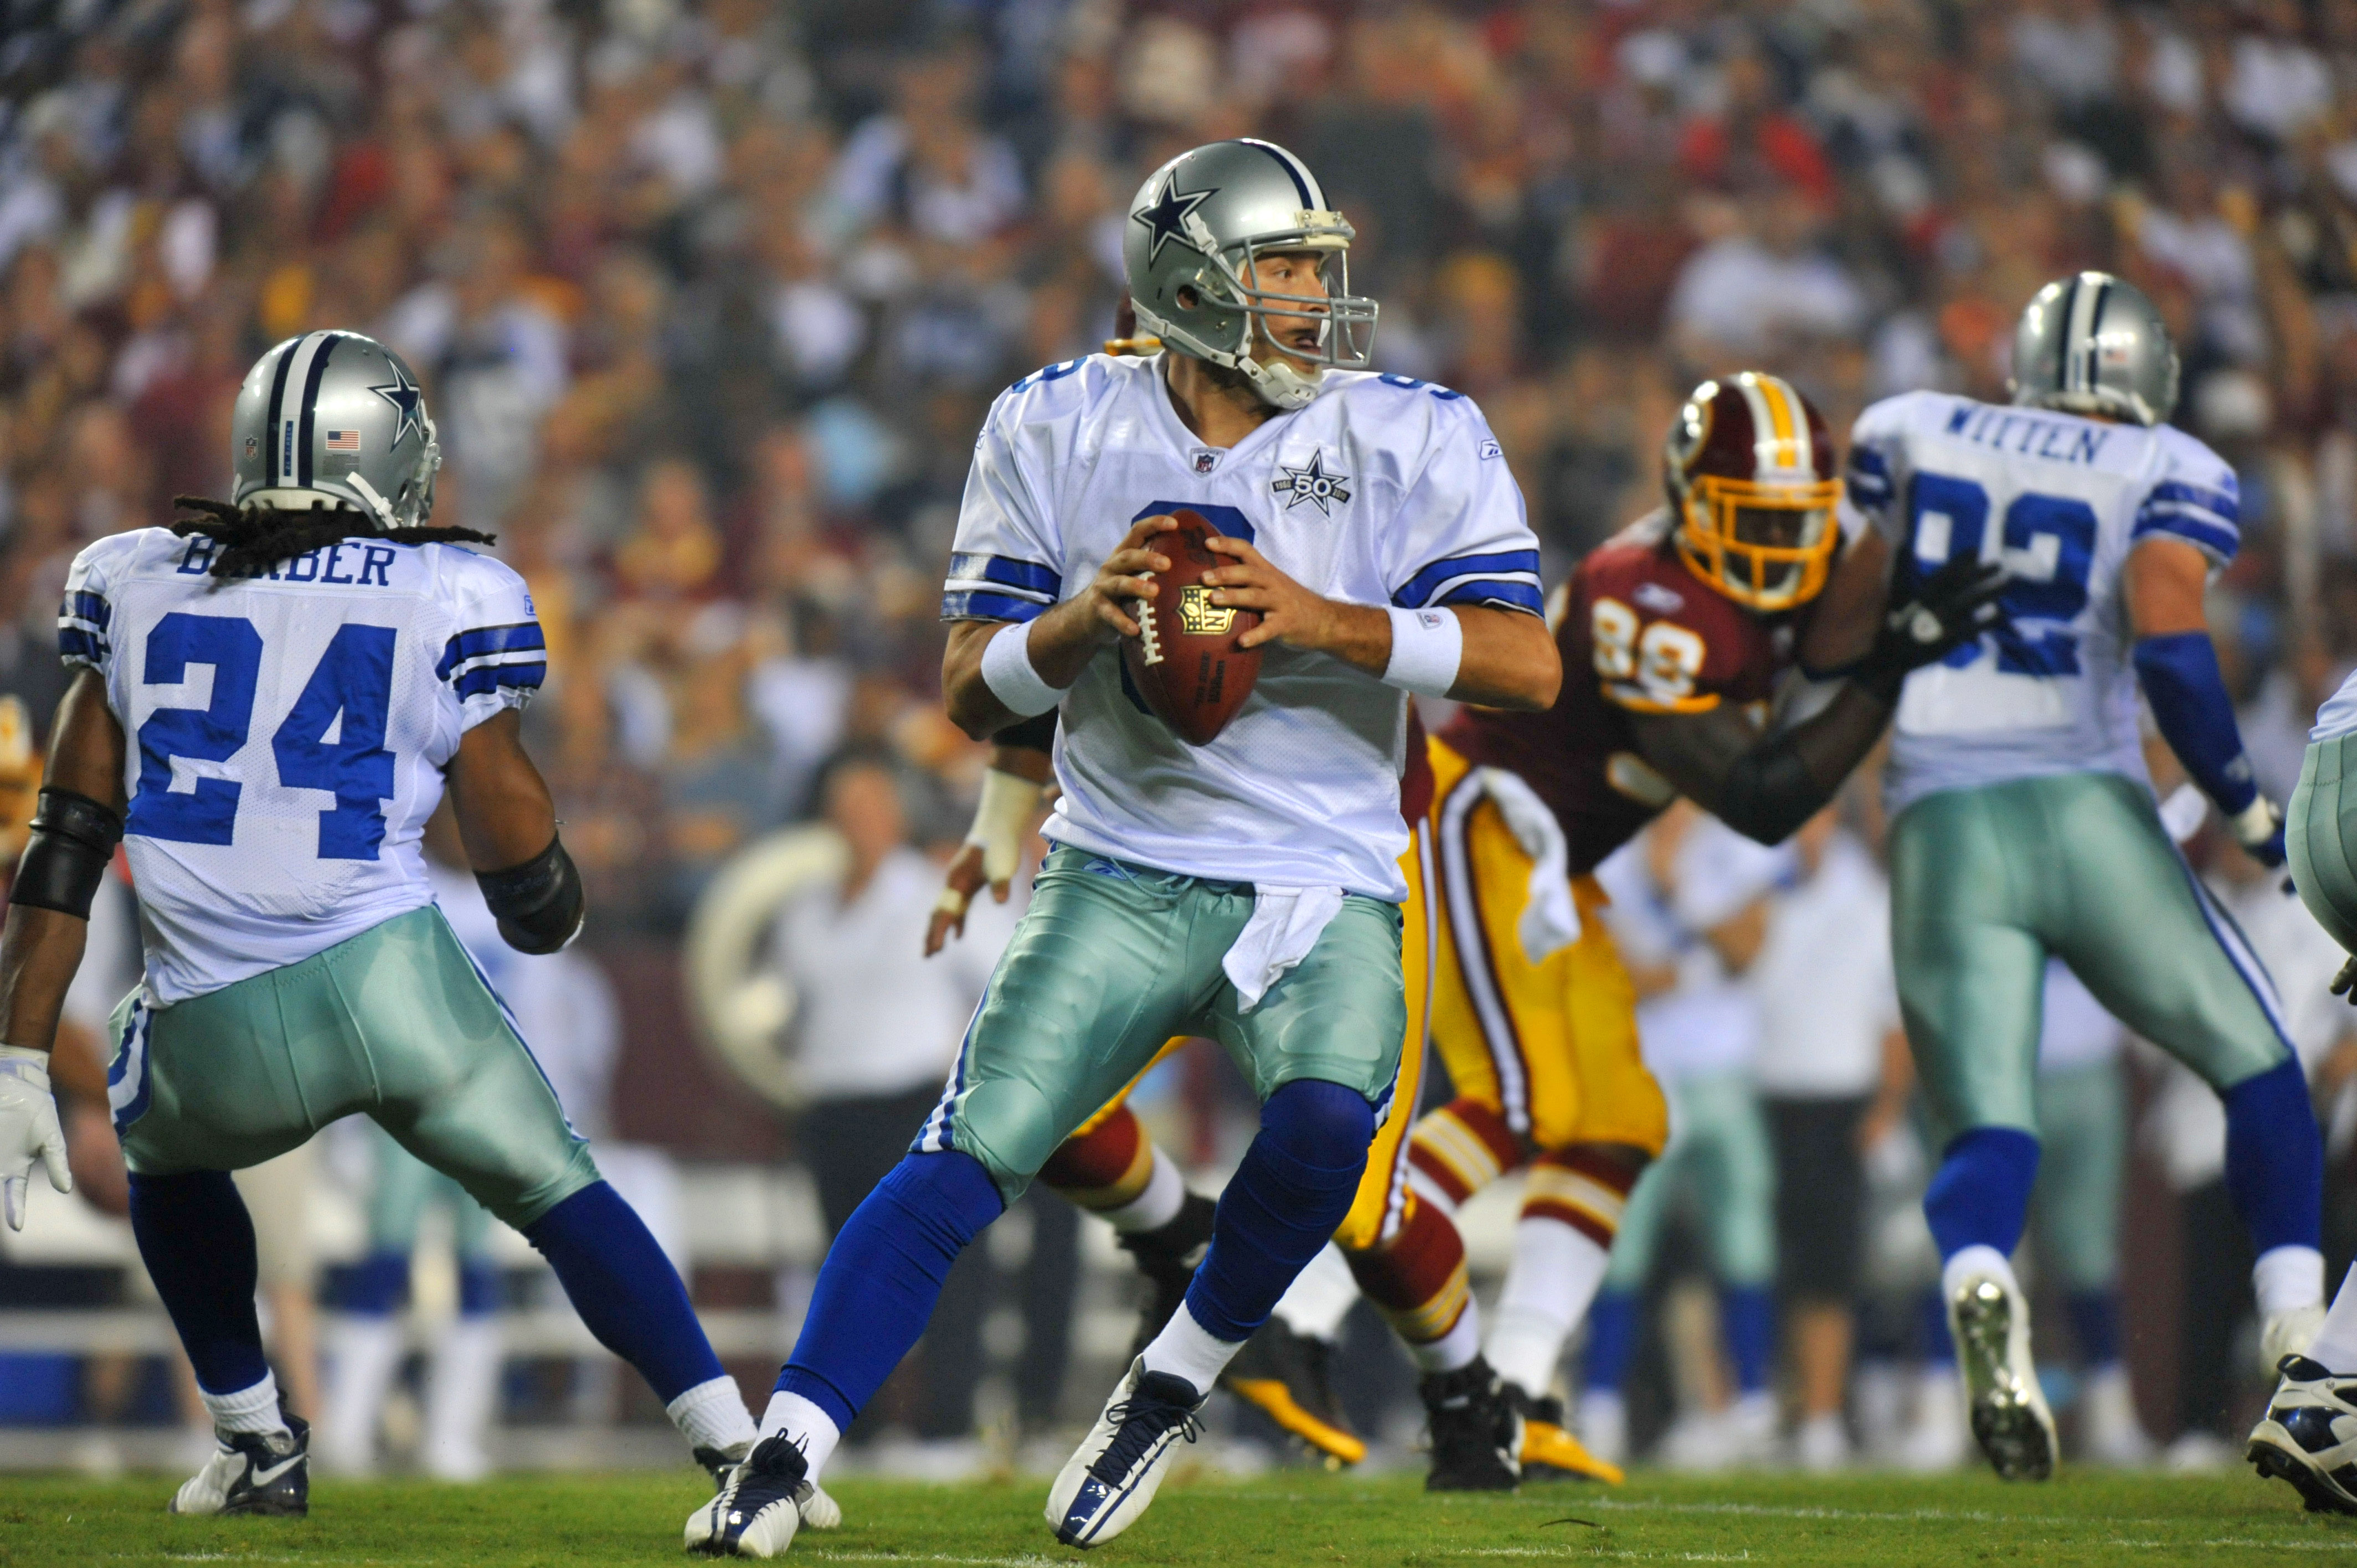 LANDOVER - SEPTEMBER 12:  Tony Romo #9 of the Dallas Cowboys looks to pass during the NFL season opener against the Washington Redskins at FedExField on September 12, 2010 in Landover, Maryland.  (Photo by Larry French/Getty Images)